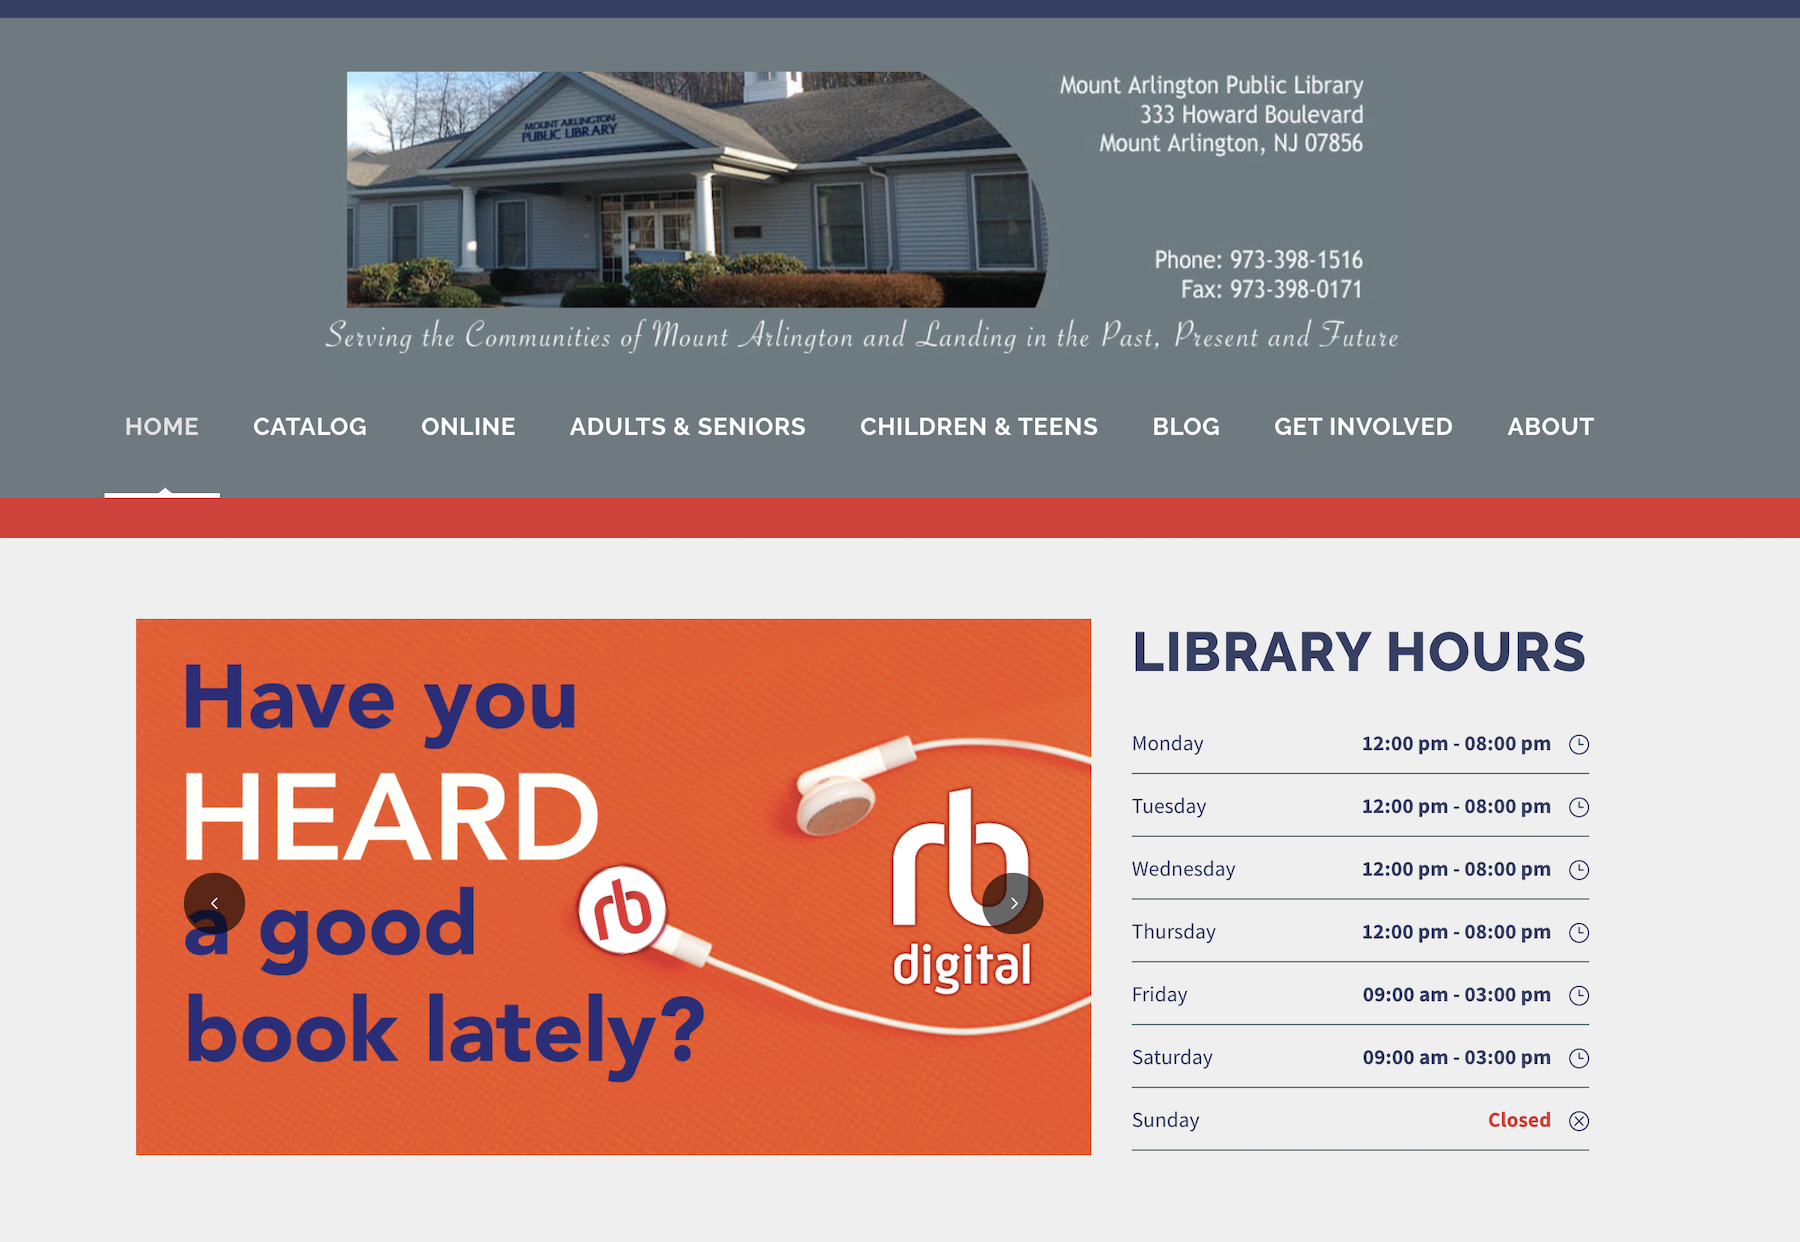 Screenshot of the hompegae of the Mount Arlington Library website